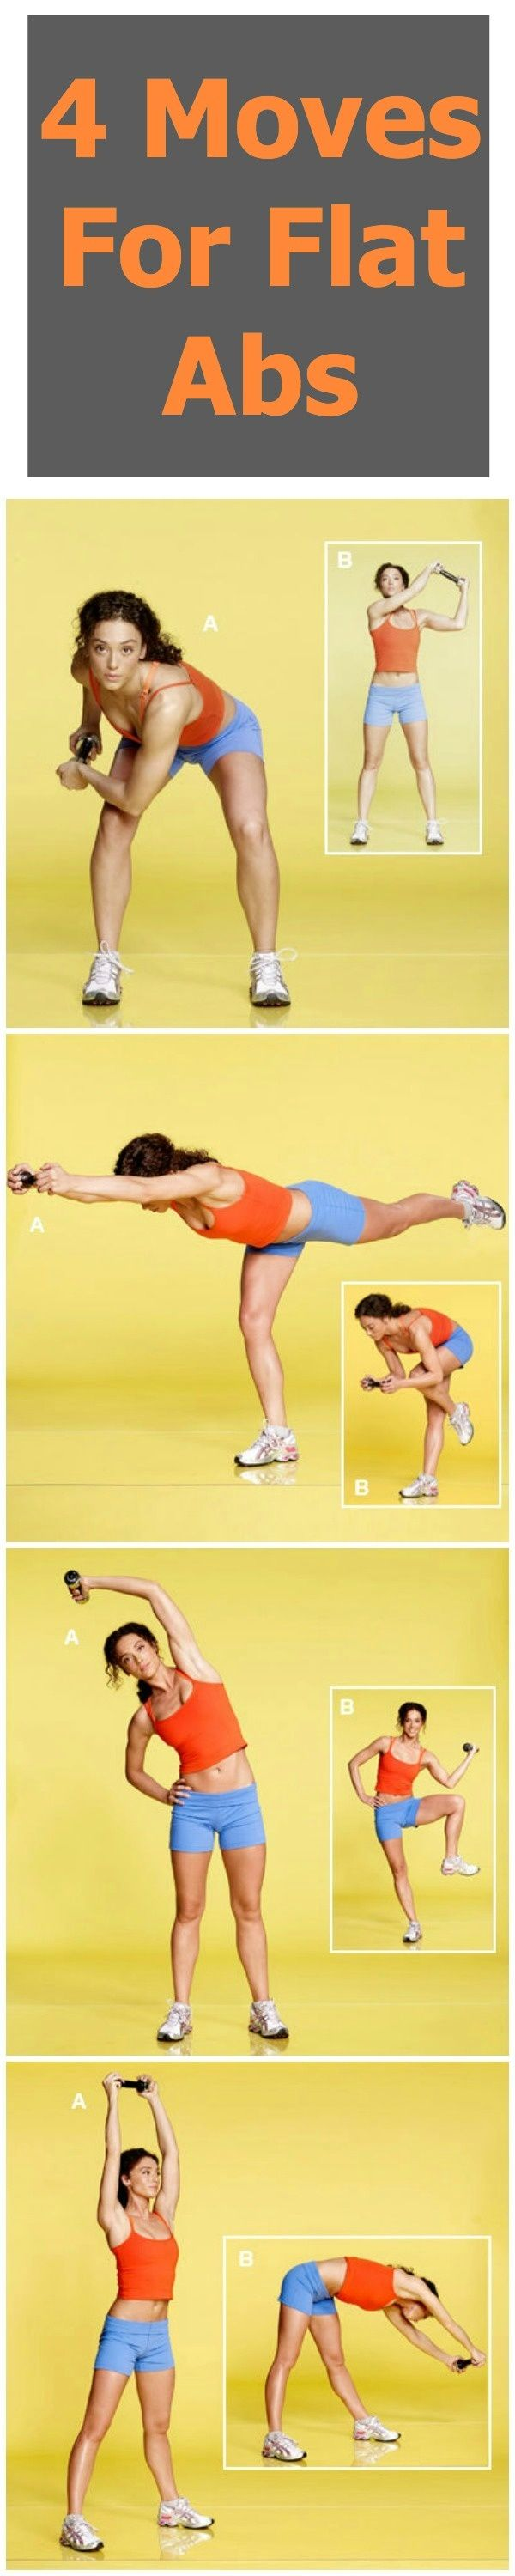 4 Simple Moves for Flat Abs: a different approach than variations of crnches/sit ups on the floor